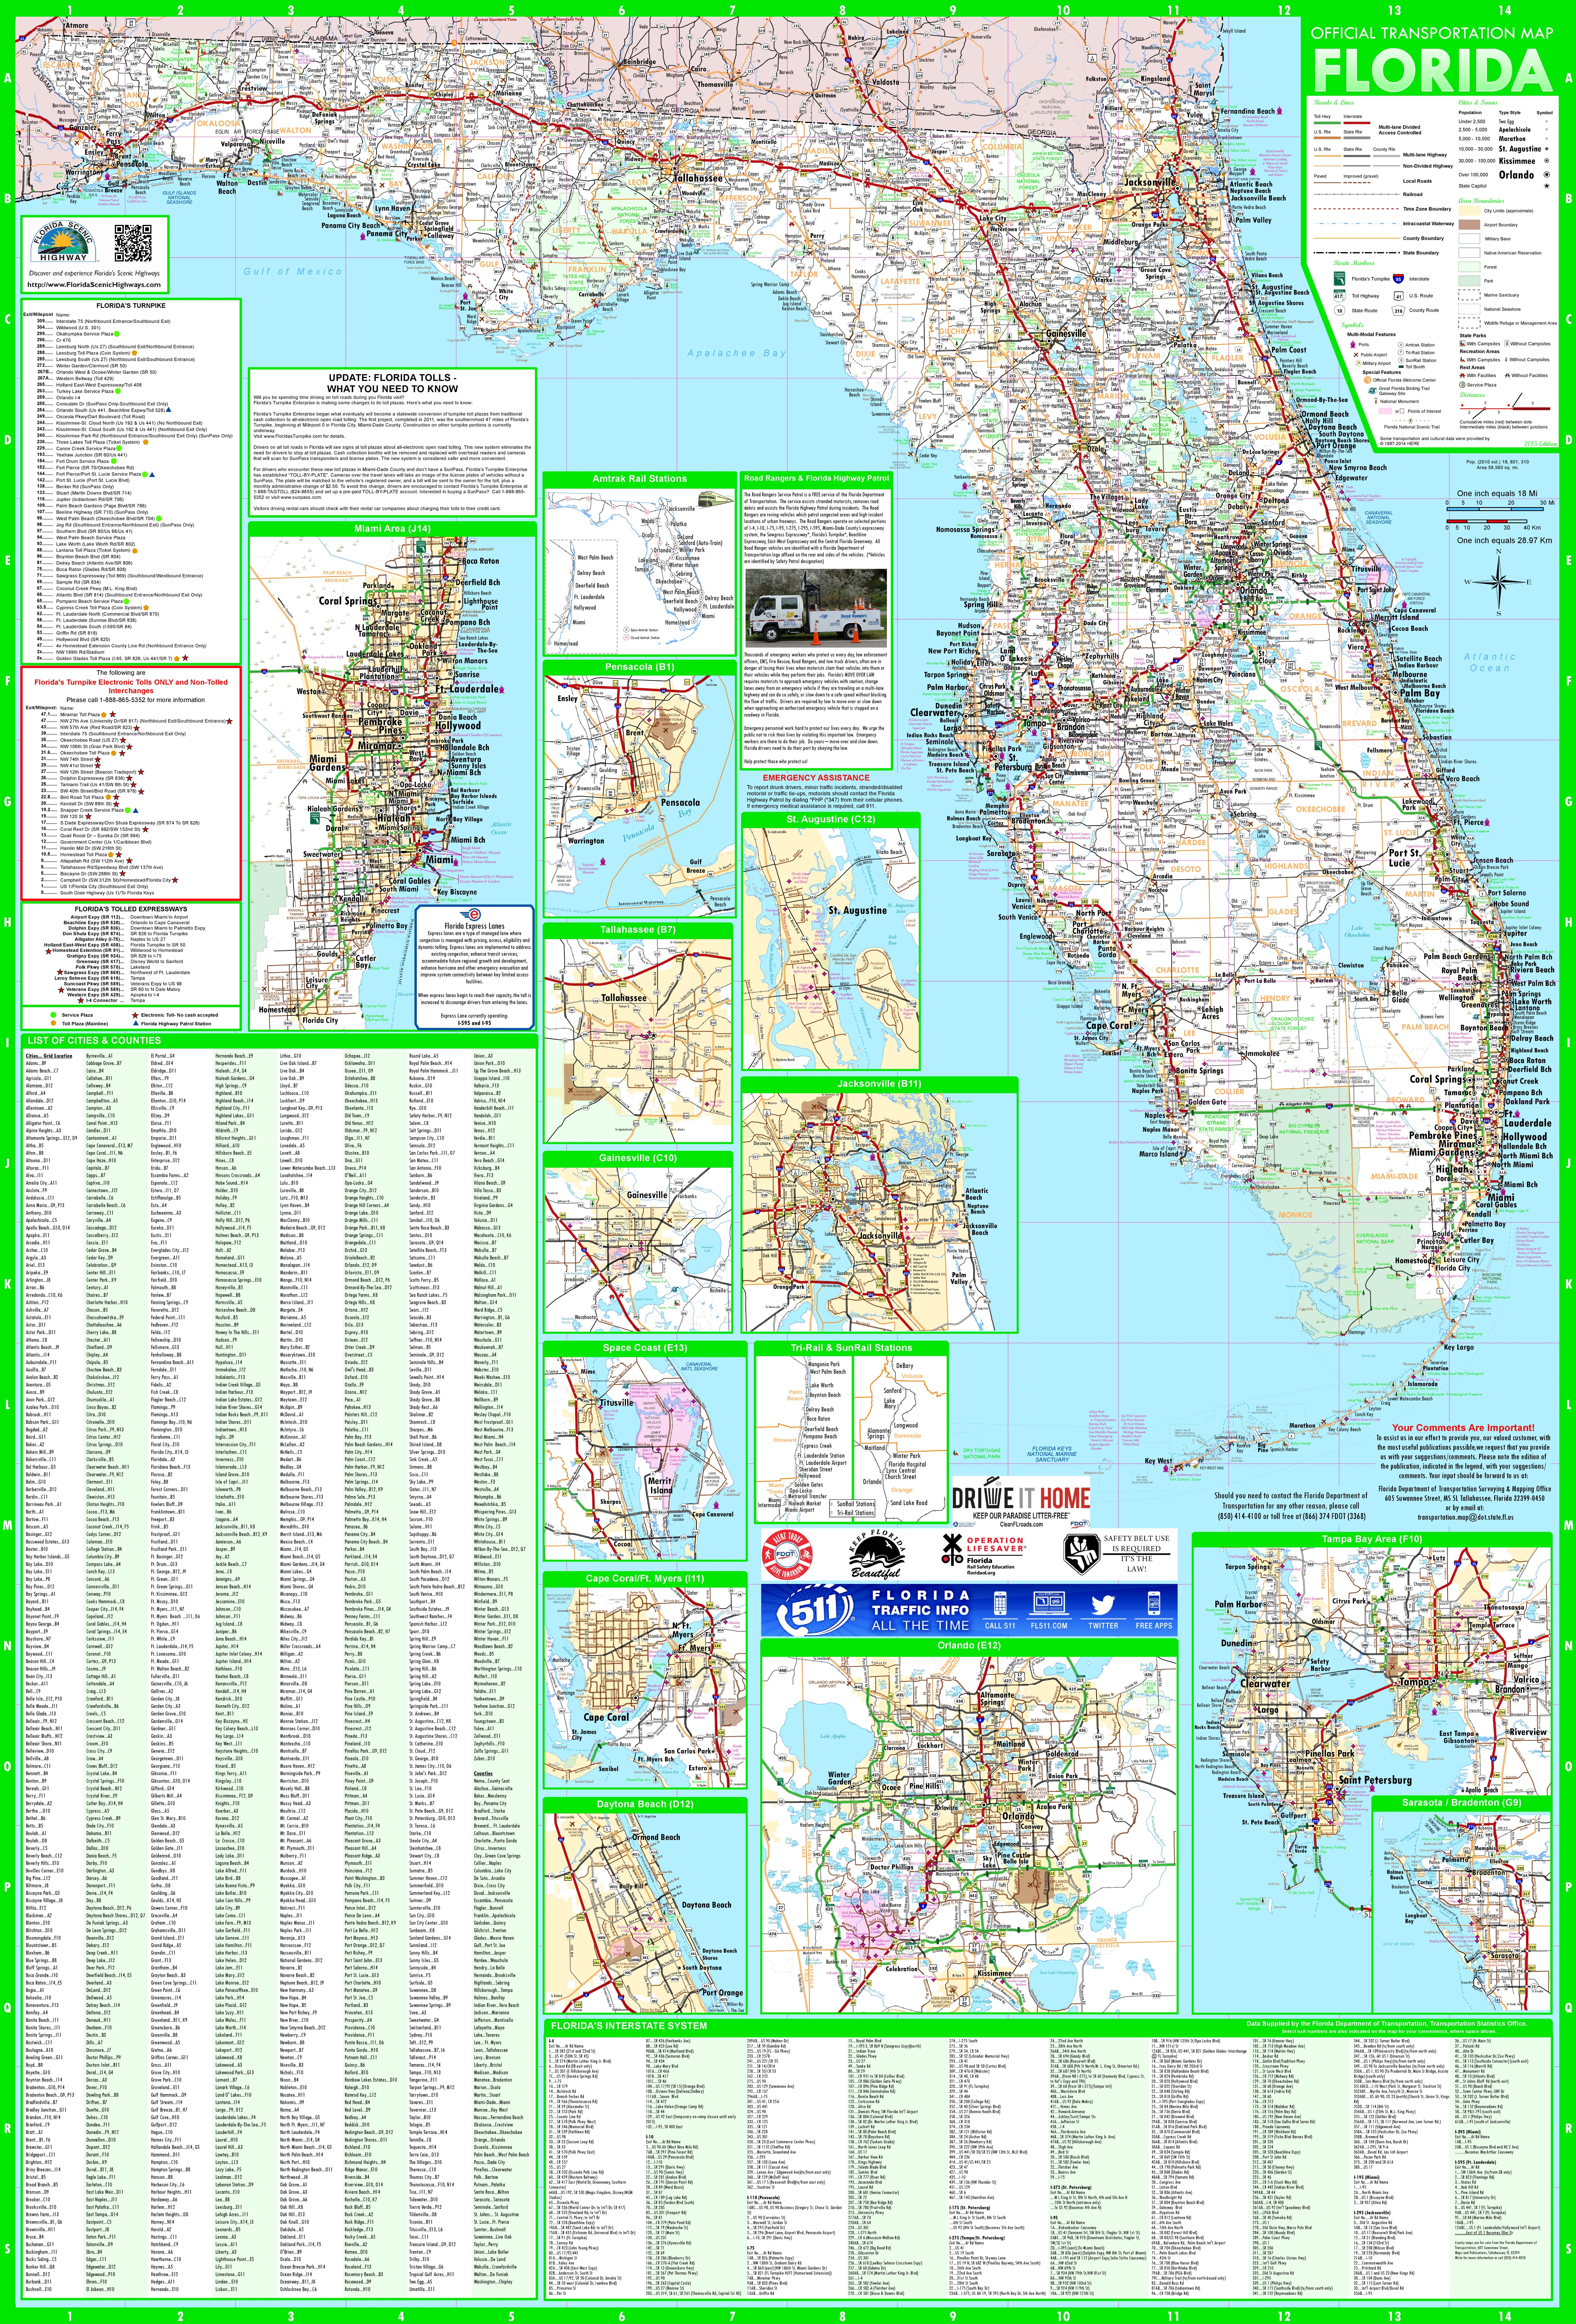 Large Detailed Map Of Florida With Cities And Towns - Florida Rest Areas Map